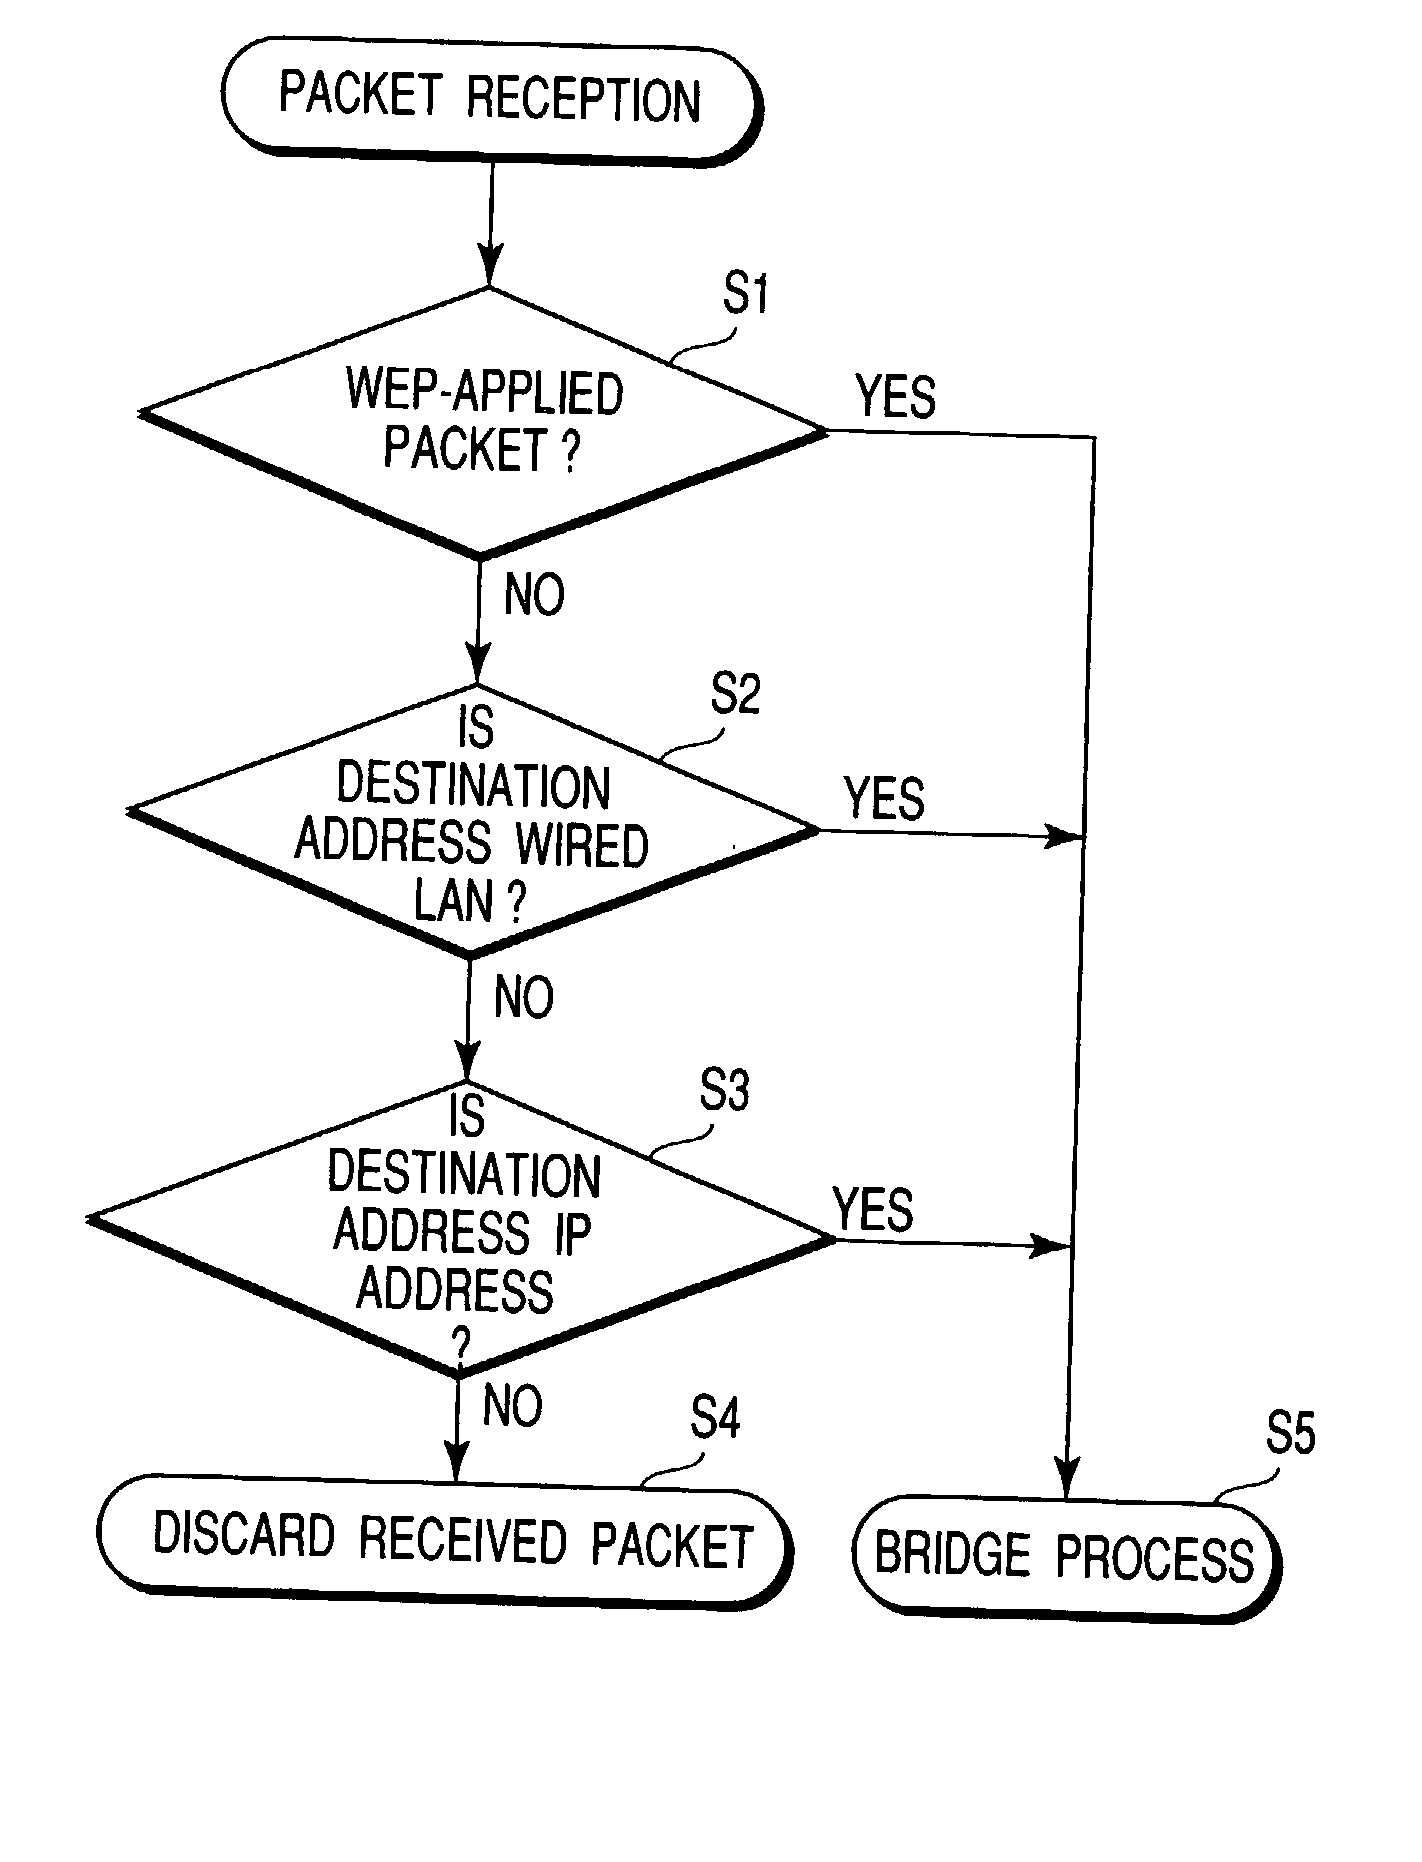 Logical Wired Network Diagram Wiring Diagrams Instructions Us20030051132 Electronic Device With Relay Function Basic